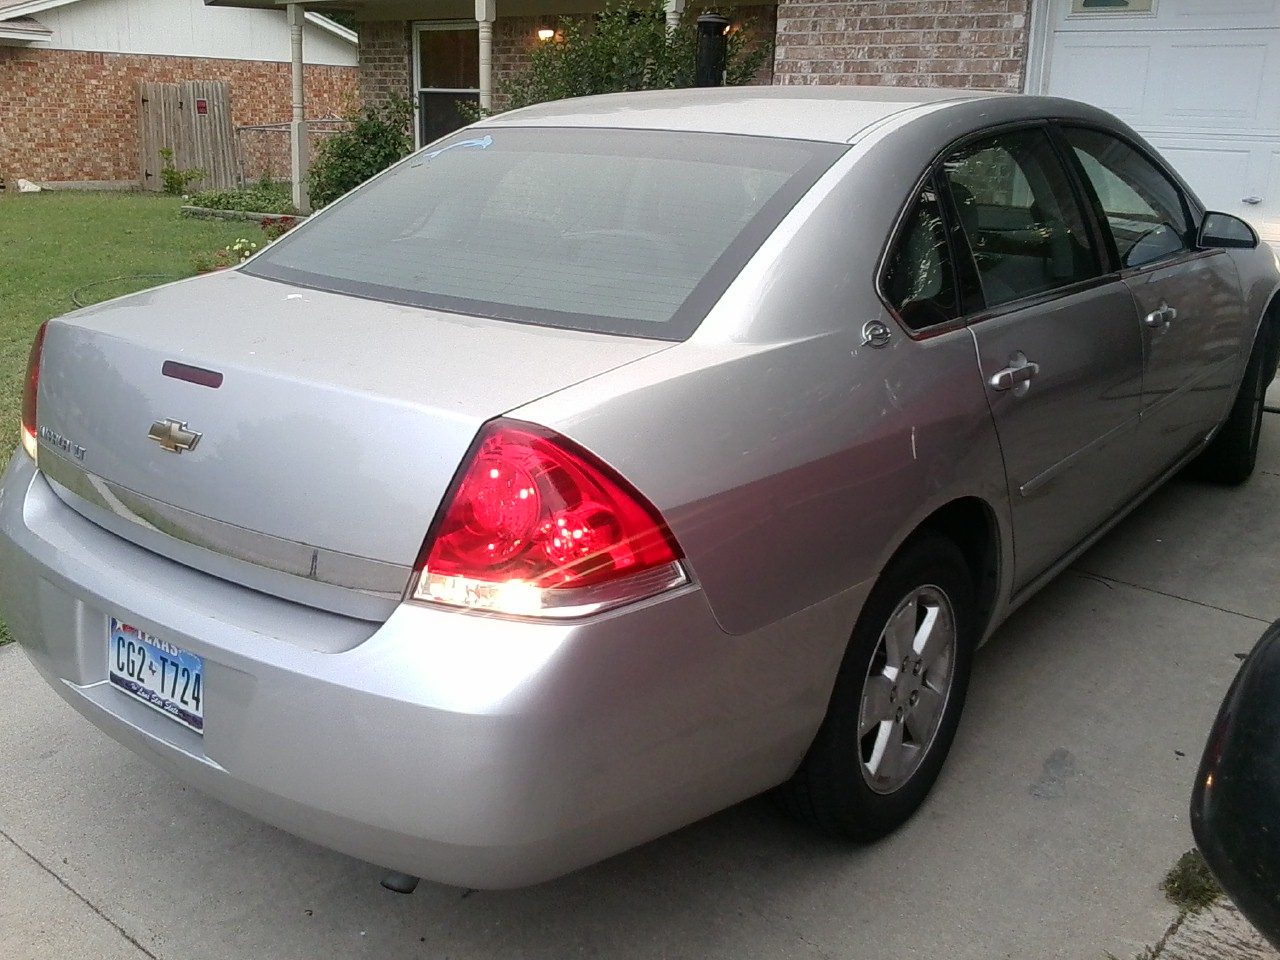 Impala 2006 chevy impala interior : 2006 Chevrolet Impala- low miles, great condition, priced way ...